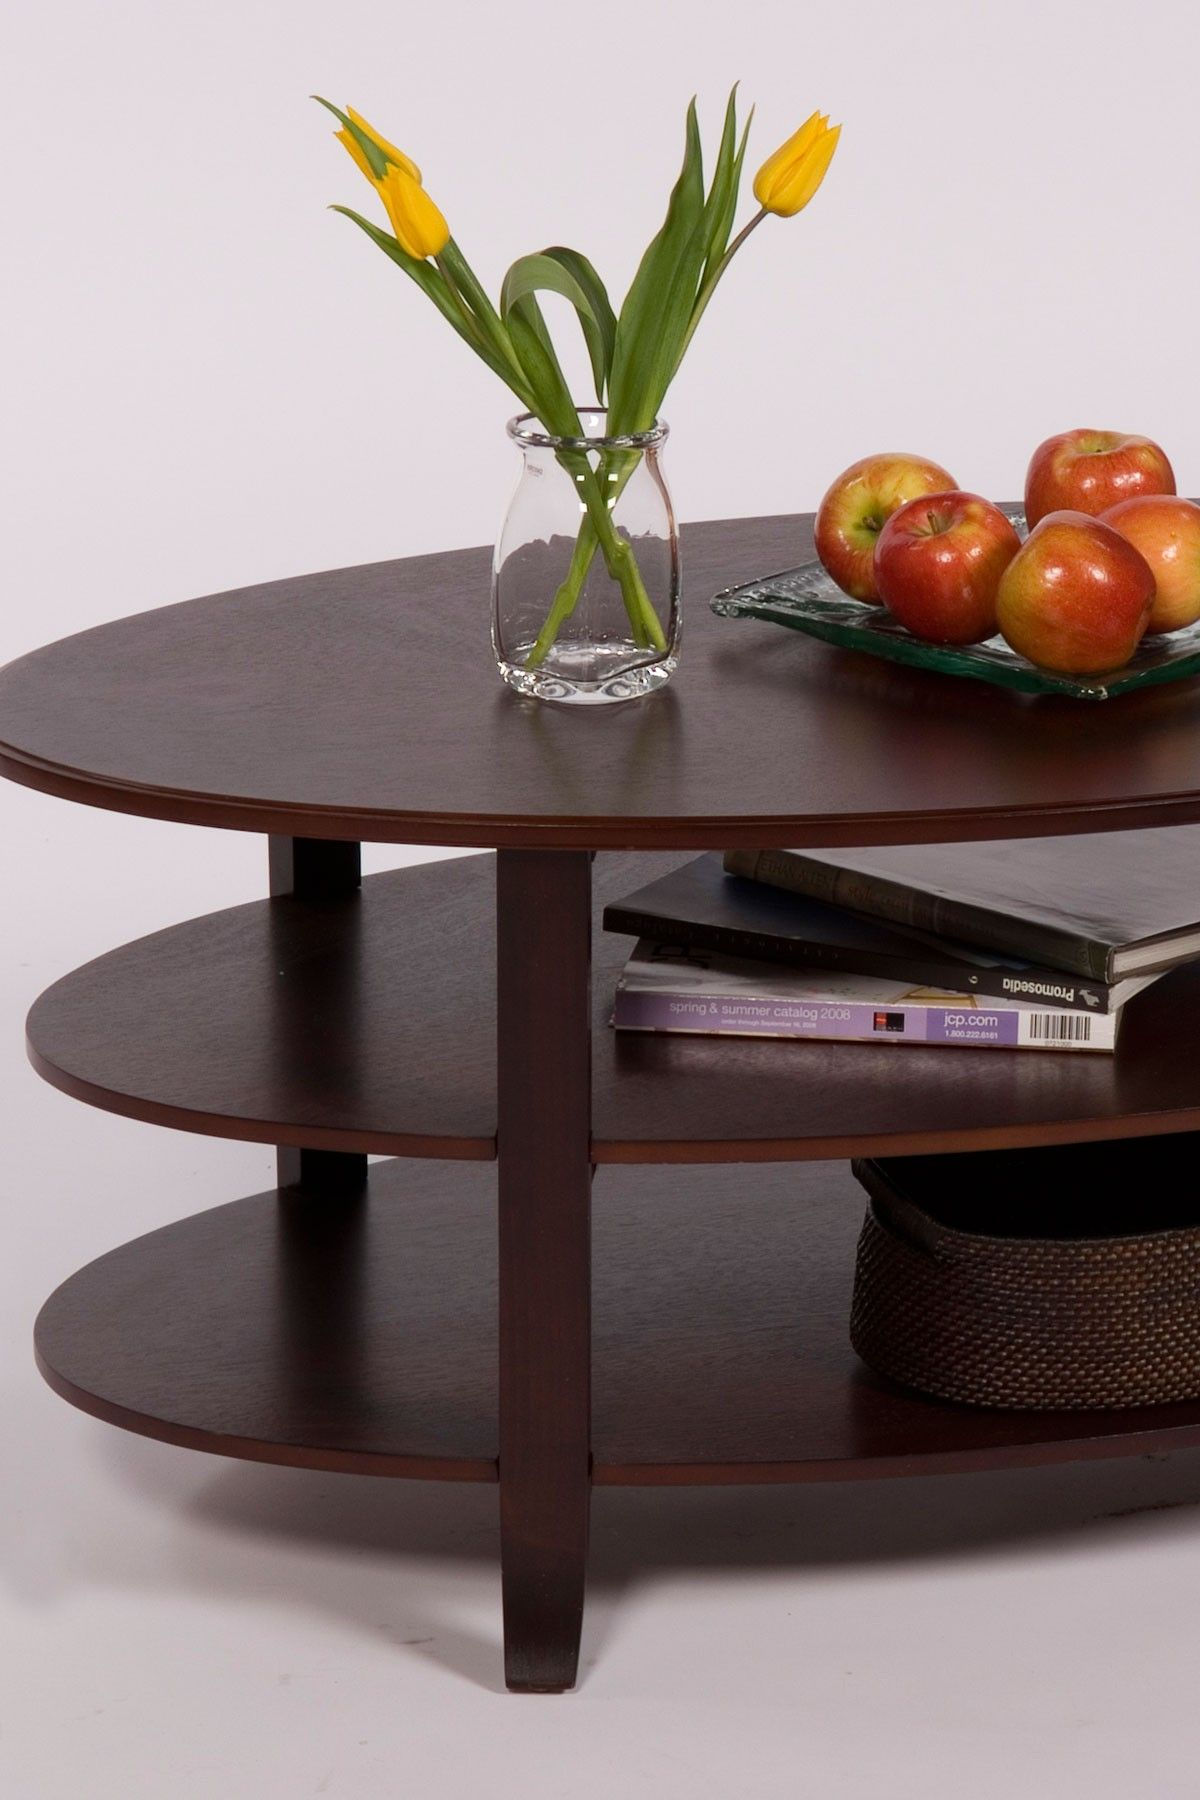 Hautelook Storage Furniture For Every Room Blowout London Espresso 3 Tier Coffee Table Coffee Table 3 Tier Coffee Table Coffee Table With Storage [ 1800 x 1200 Pixel ]